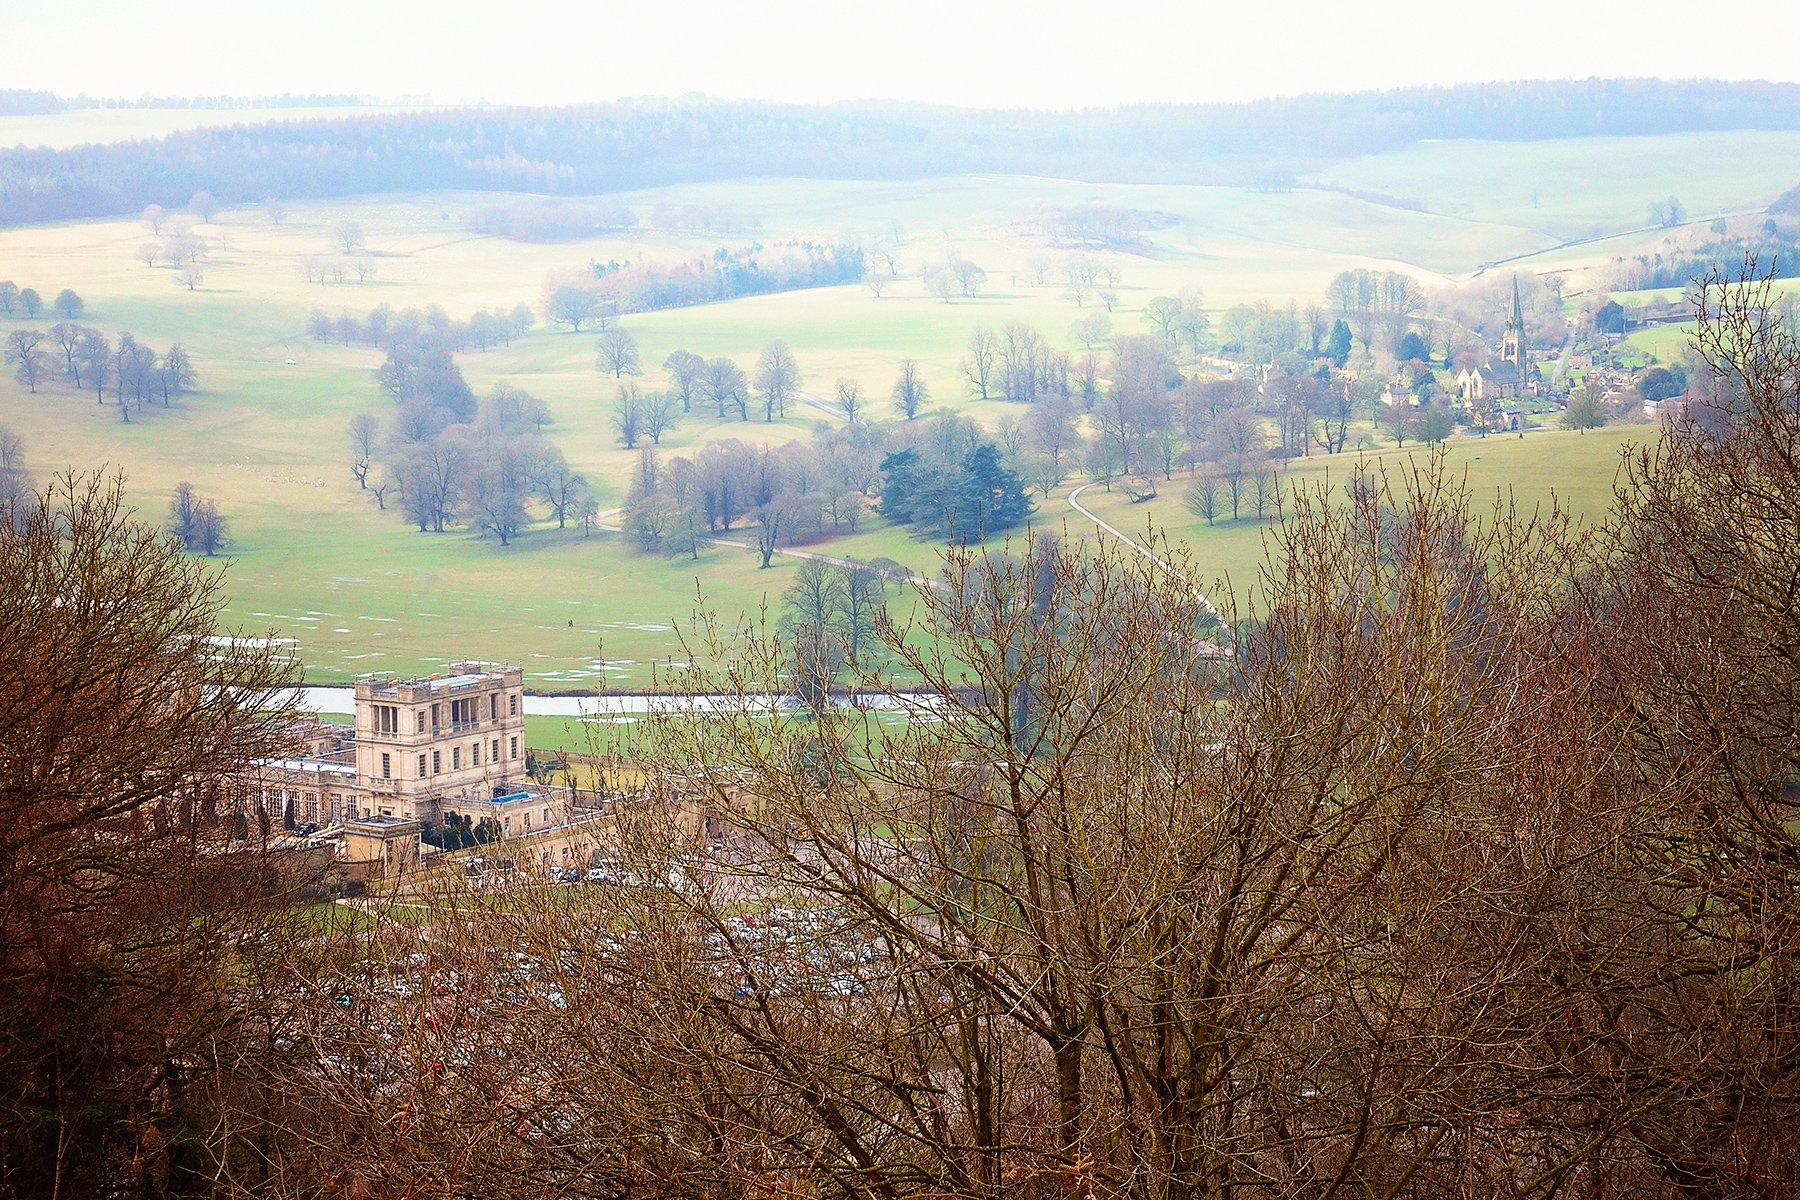 View from Hunting Tower over Chatsworth Estate